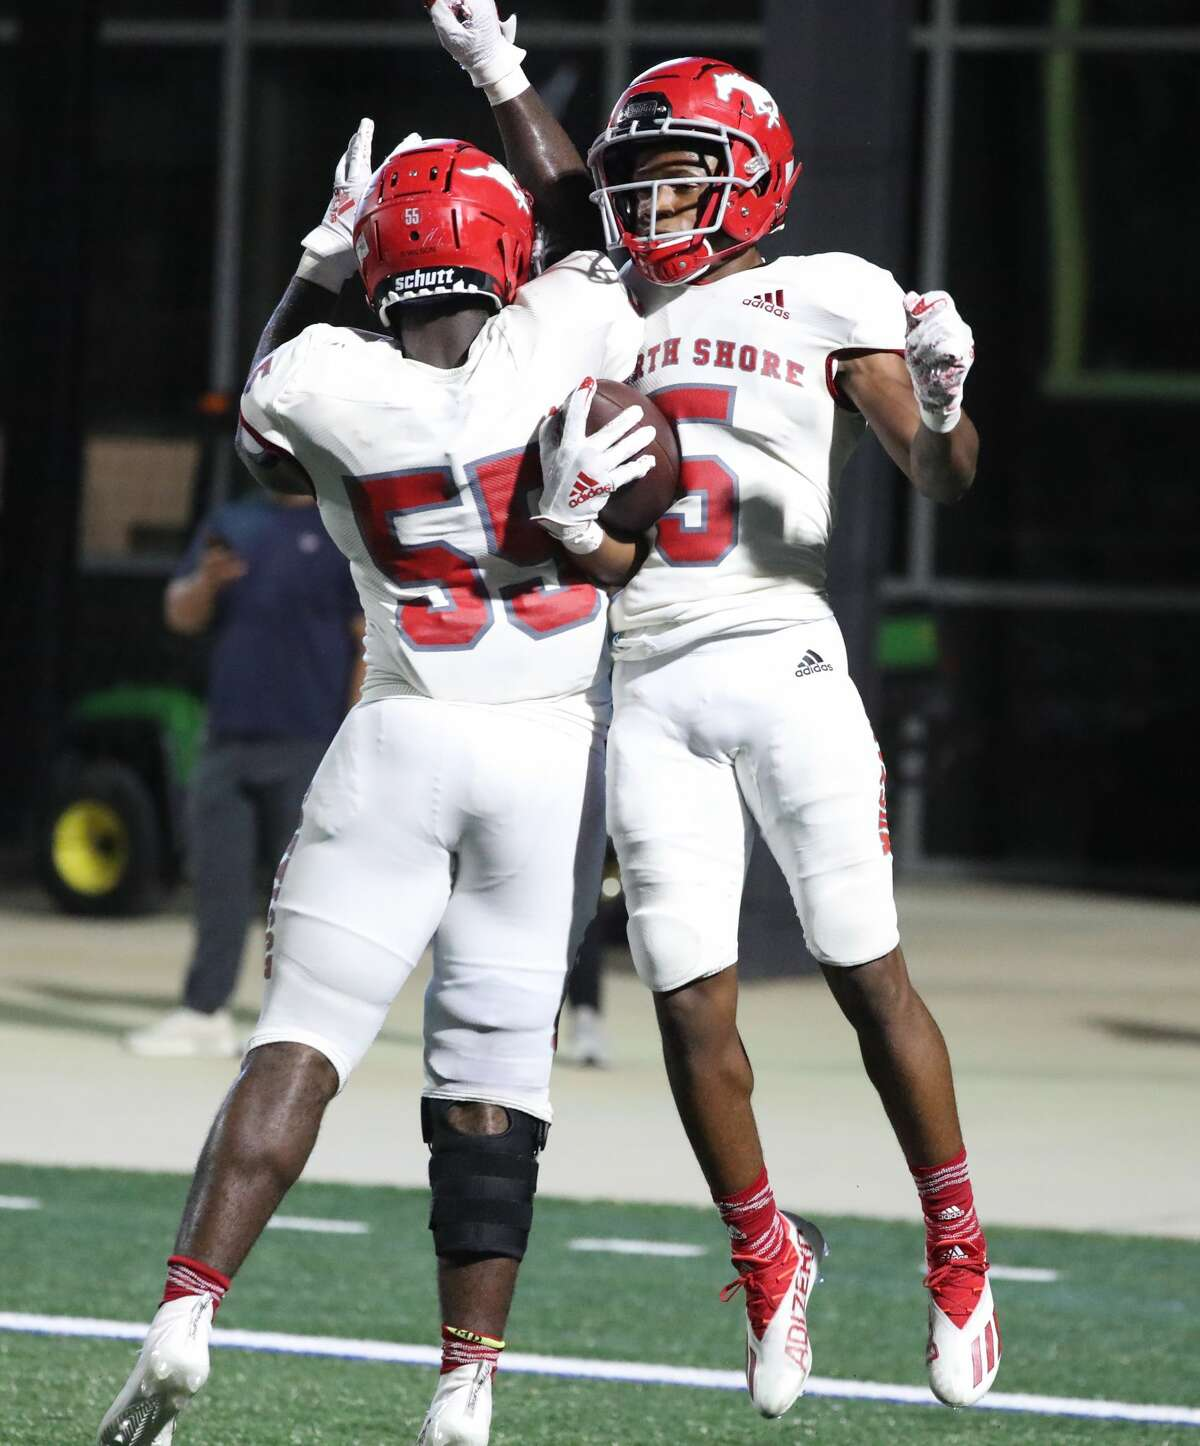 North Shore's Jacoby Davis (5) celebrates after scoring a touchdown after intercepting a pass thrown by Shadow Creek's QB Duke Butler (7) during the second half of a high school football game at Freedom Field, Friday, August 27, 2021, in Iowa Colony.